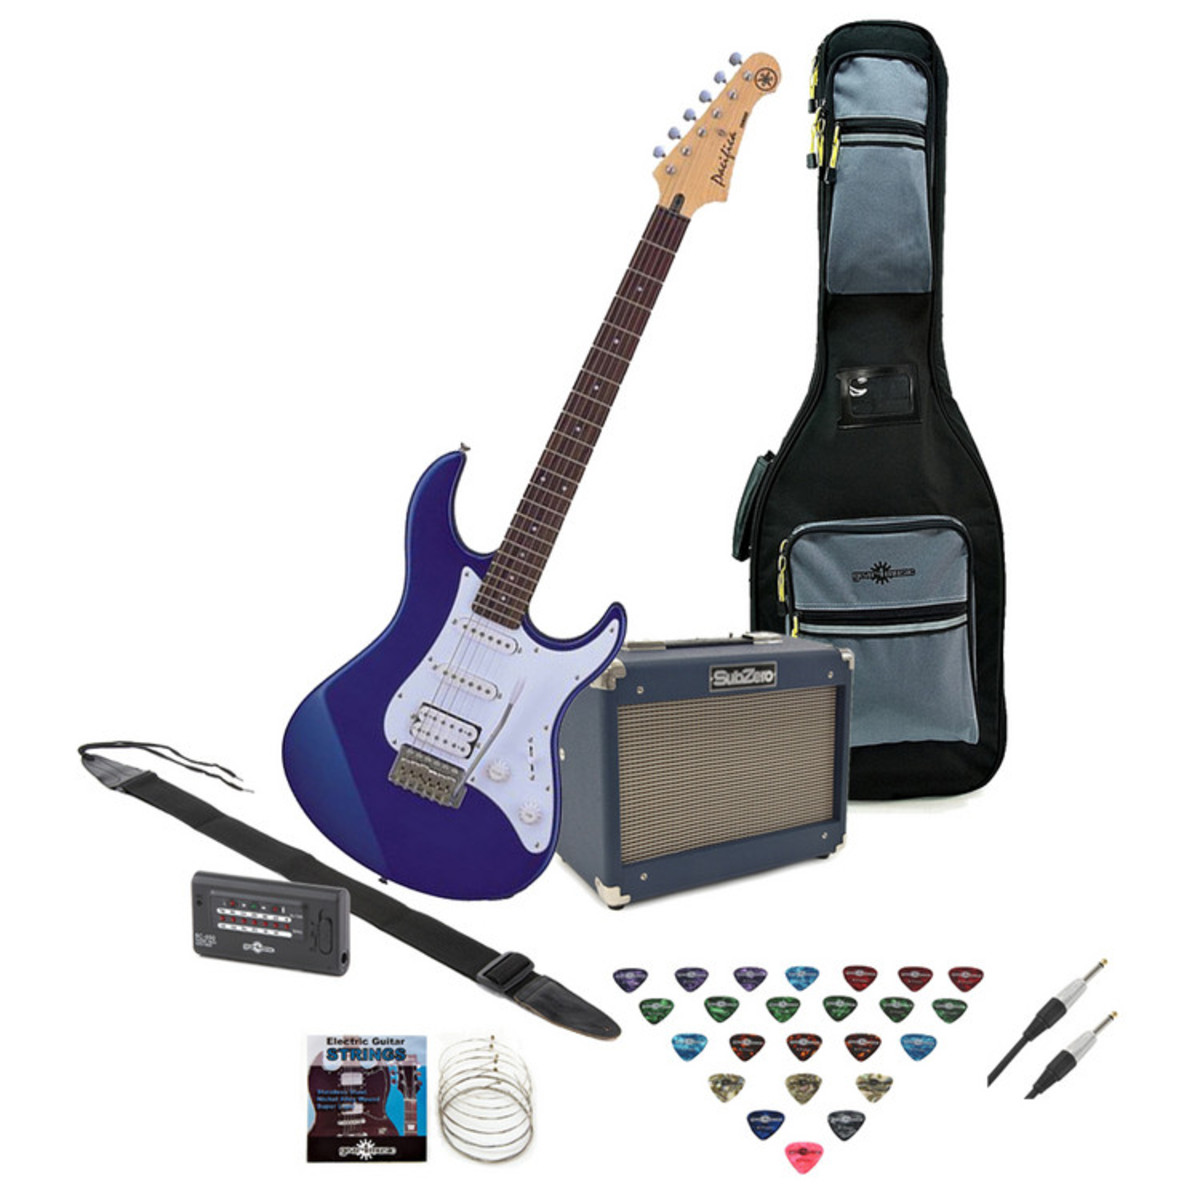 yamaha pacifica 012 electric guitar blue with subzero 10w amp pack at gear4music. Black Bedroom Furniture Sets. Home Design Ideas